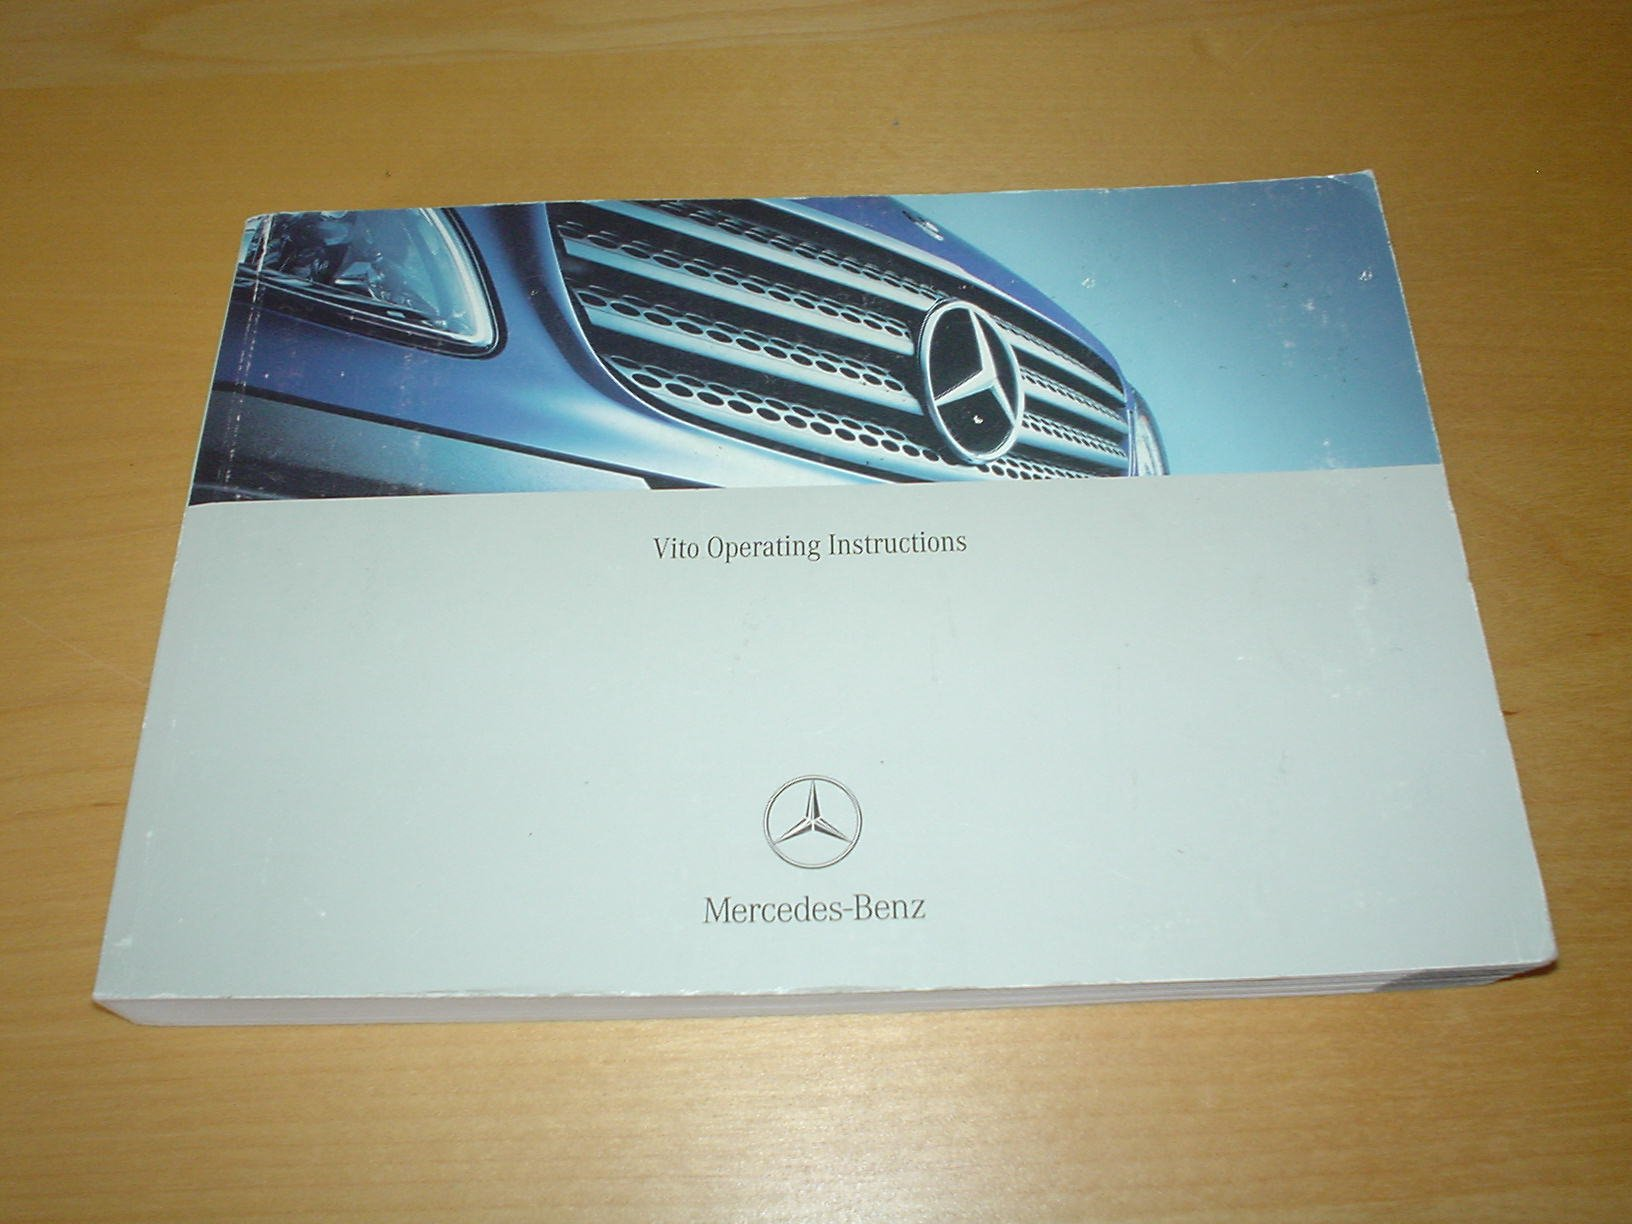 MERCEDES BENZ VITO W639 OWNERS MANUAL HANDBOOK (2003 - 2011) - 109 CDI /  111 CDI / 115 CDI / 119 / 122 - OWNER'S HAND BOOK MANUAL: Amazon.co.uk:  MERCEDES ...